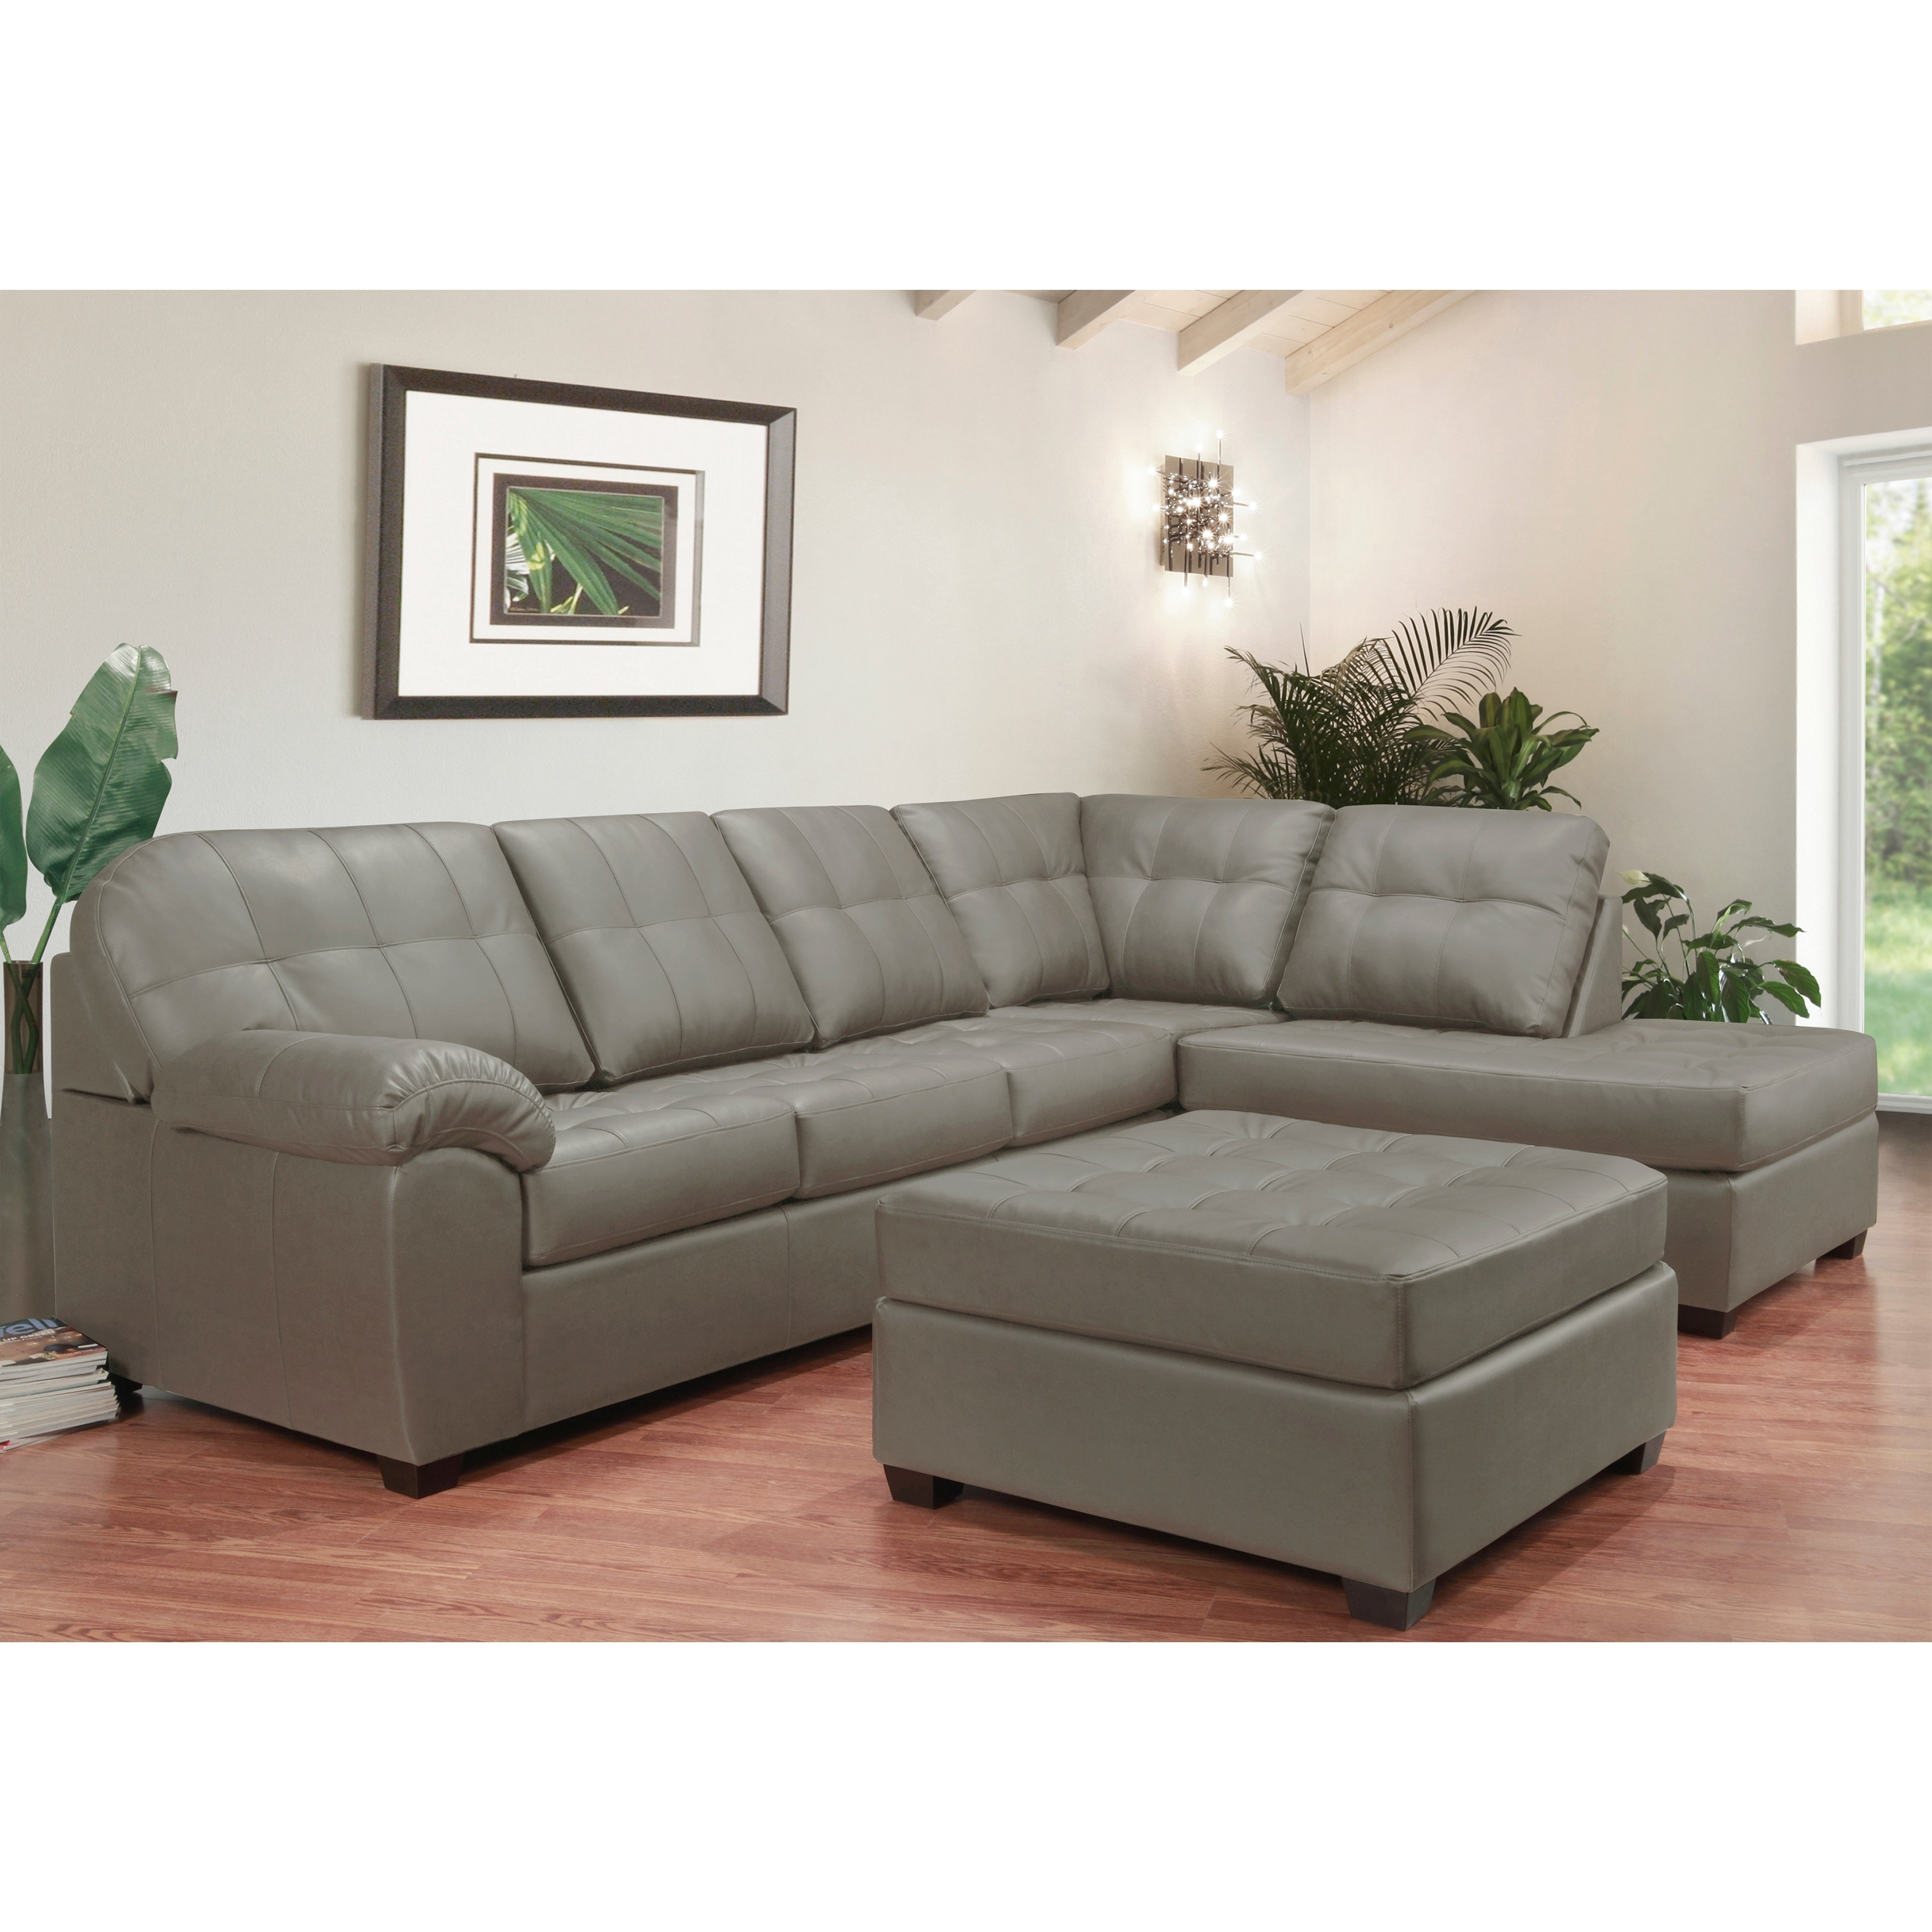 Surprising Emerson Top Grain Leather Tufted Sectional Sofa And Ottoman Interior Design Ideas Helimdqseriescom